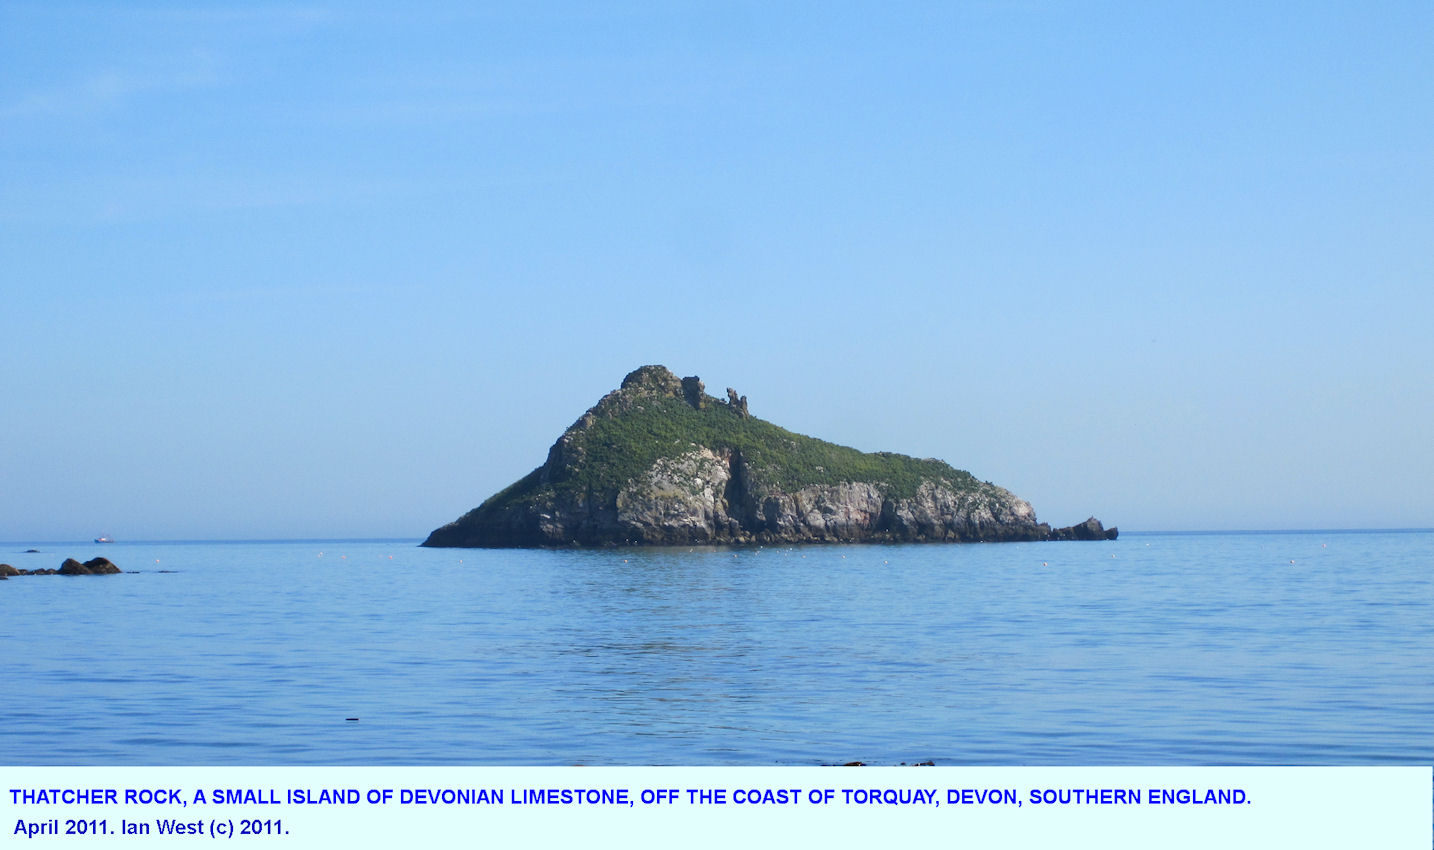 Thatcher Rock, a small island of Devonian Limestone, English Riviera, Torquay, Devon, southern England, 2011